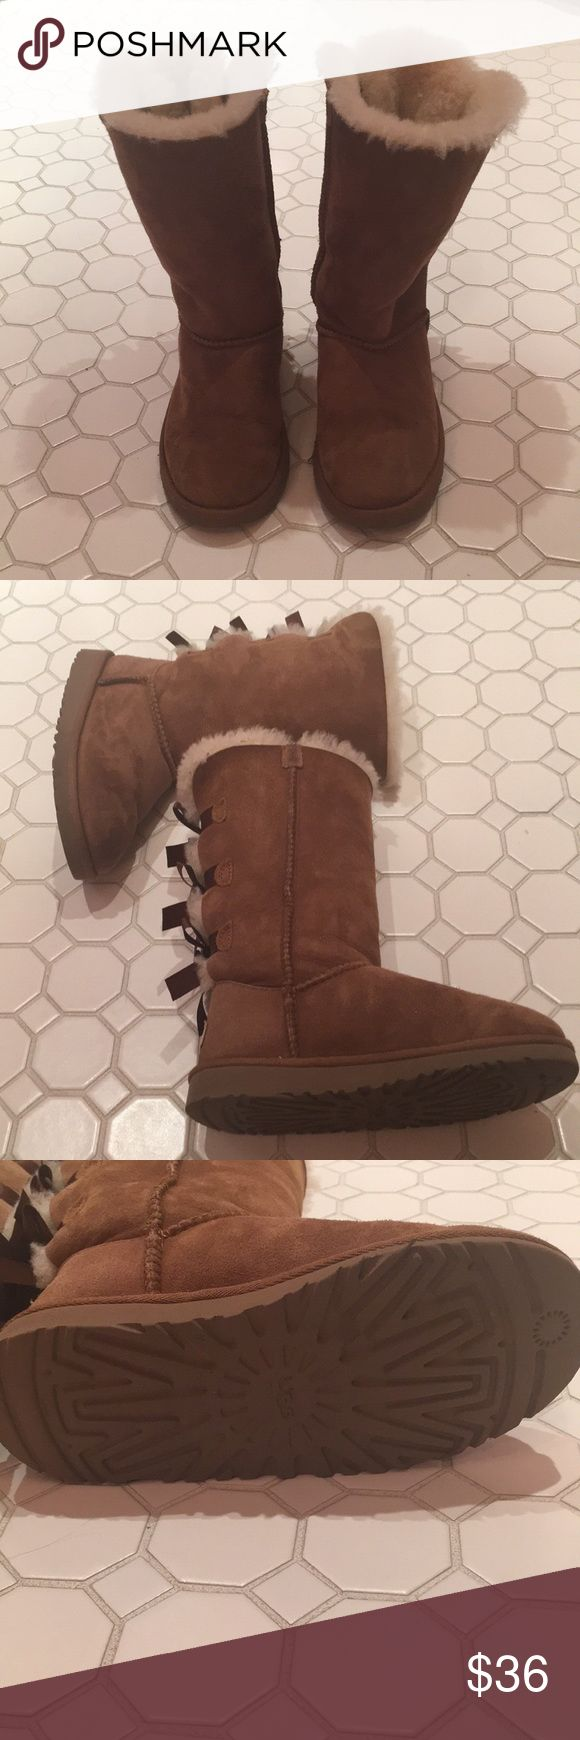 Bailey Bow UGGS - Brown - Tall I only wore these shoes a handful of times! These are real UGGS that I bought at Dillard's a few years back (these are even still available on Dillard's). They are so cute but I jut grew out of them too fast! PLEASE FEEL FREE TO MAKE OFFERS!❤️ UGG Shoes Boots